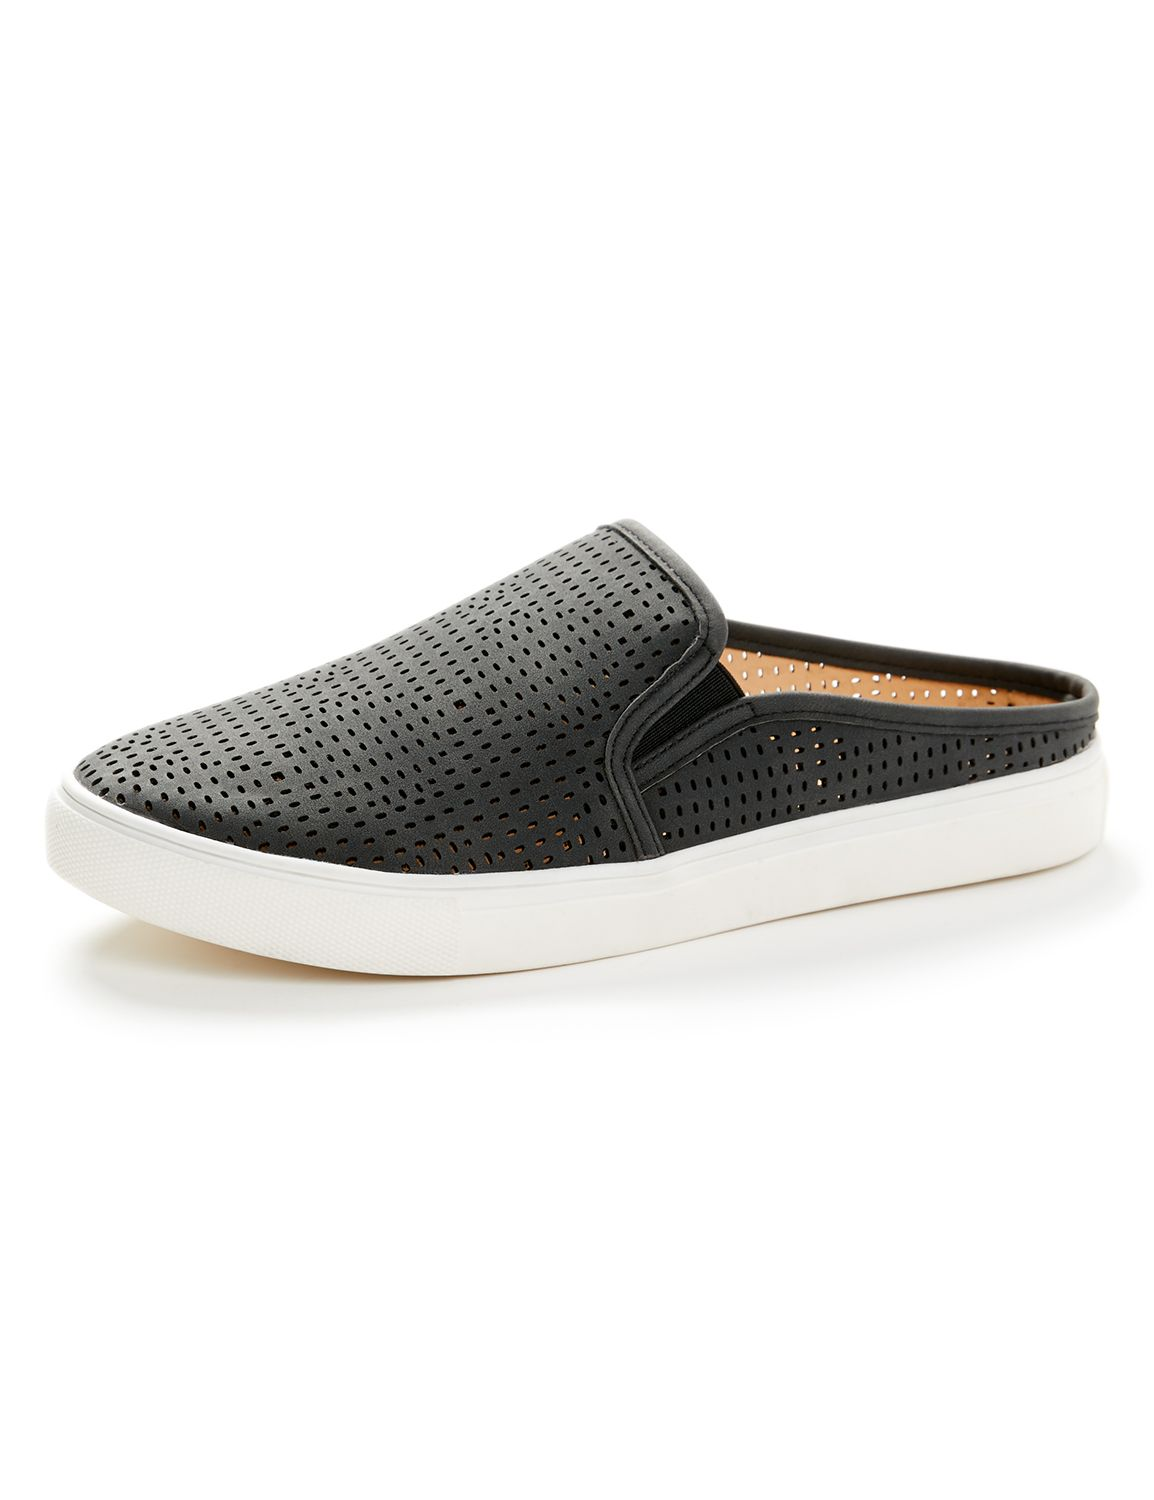 Good Soles Slip-On Sneaker Perf Slip On Sneaker M24813 MP-300097770